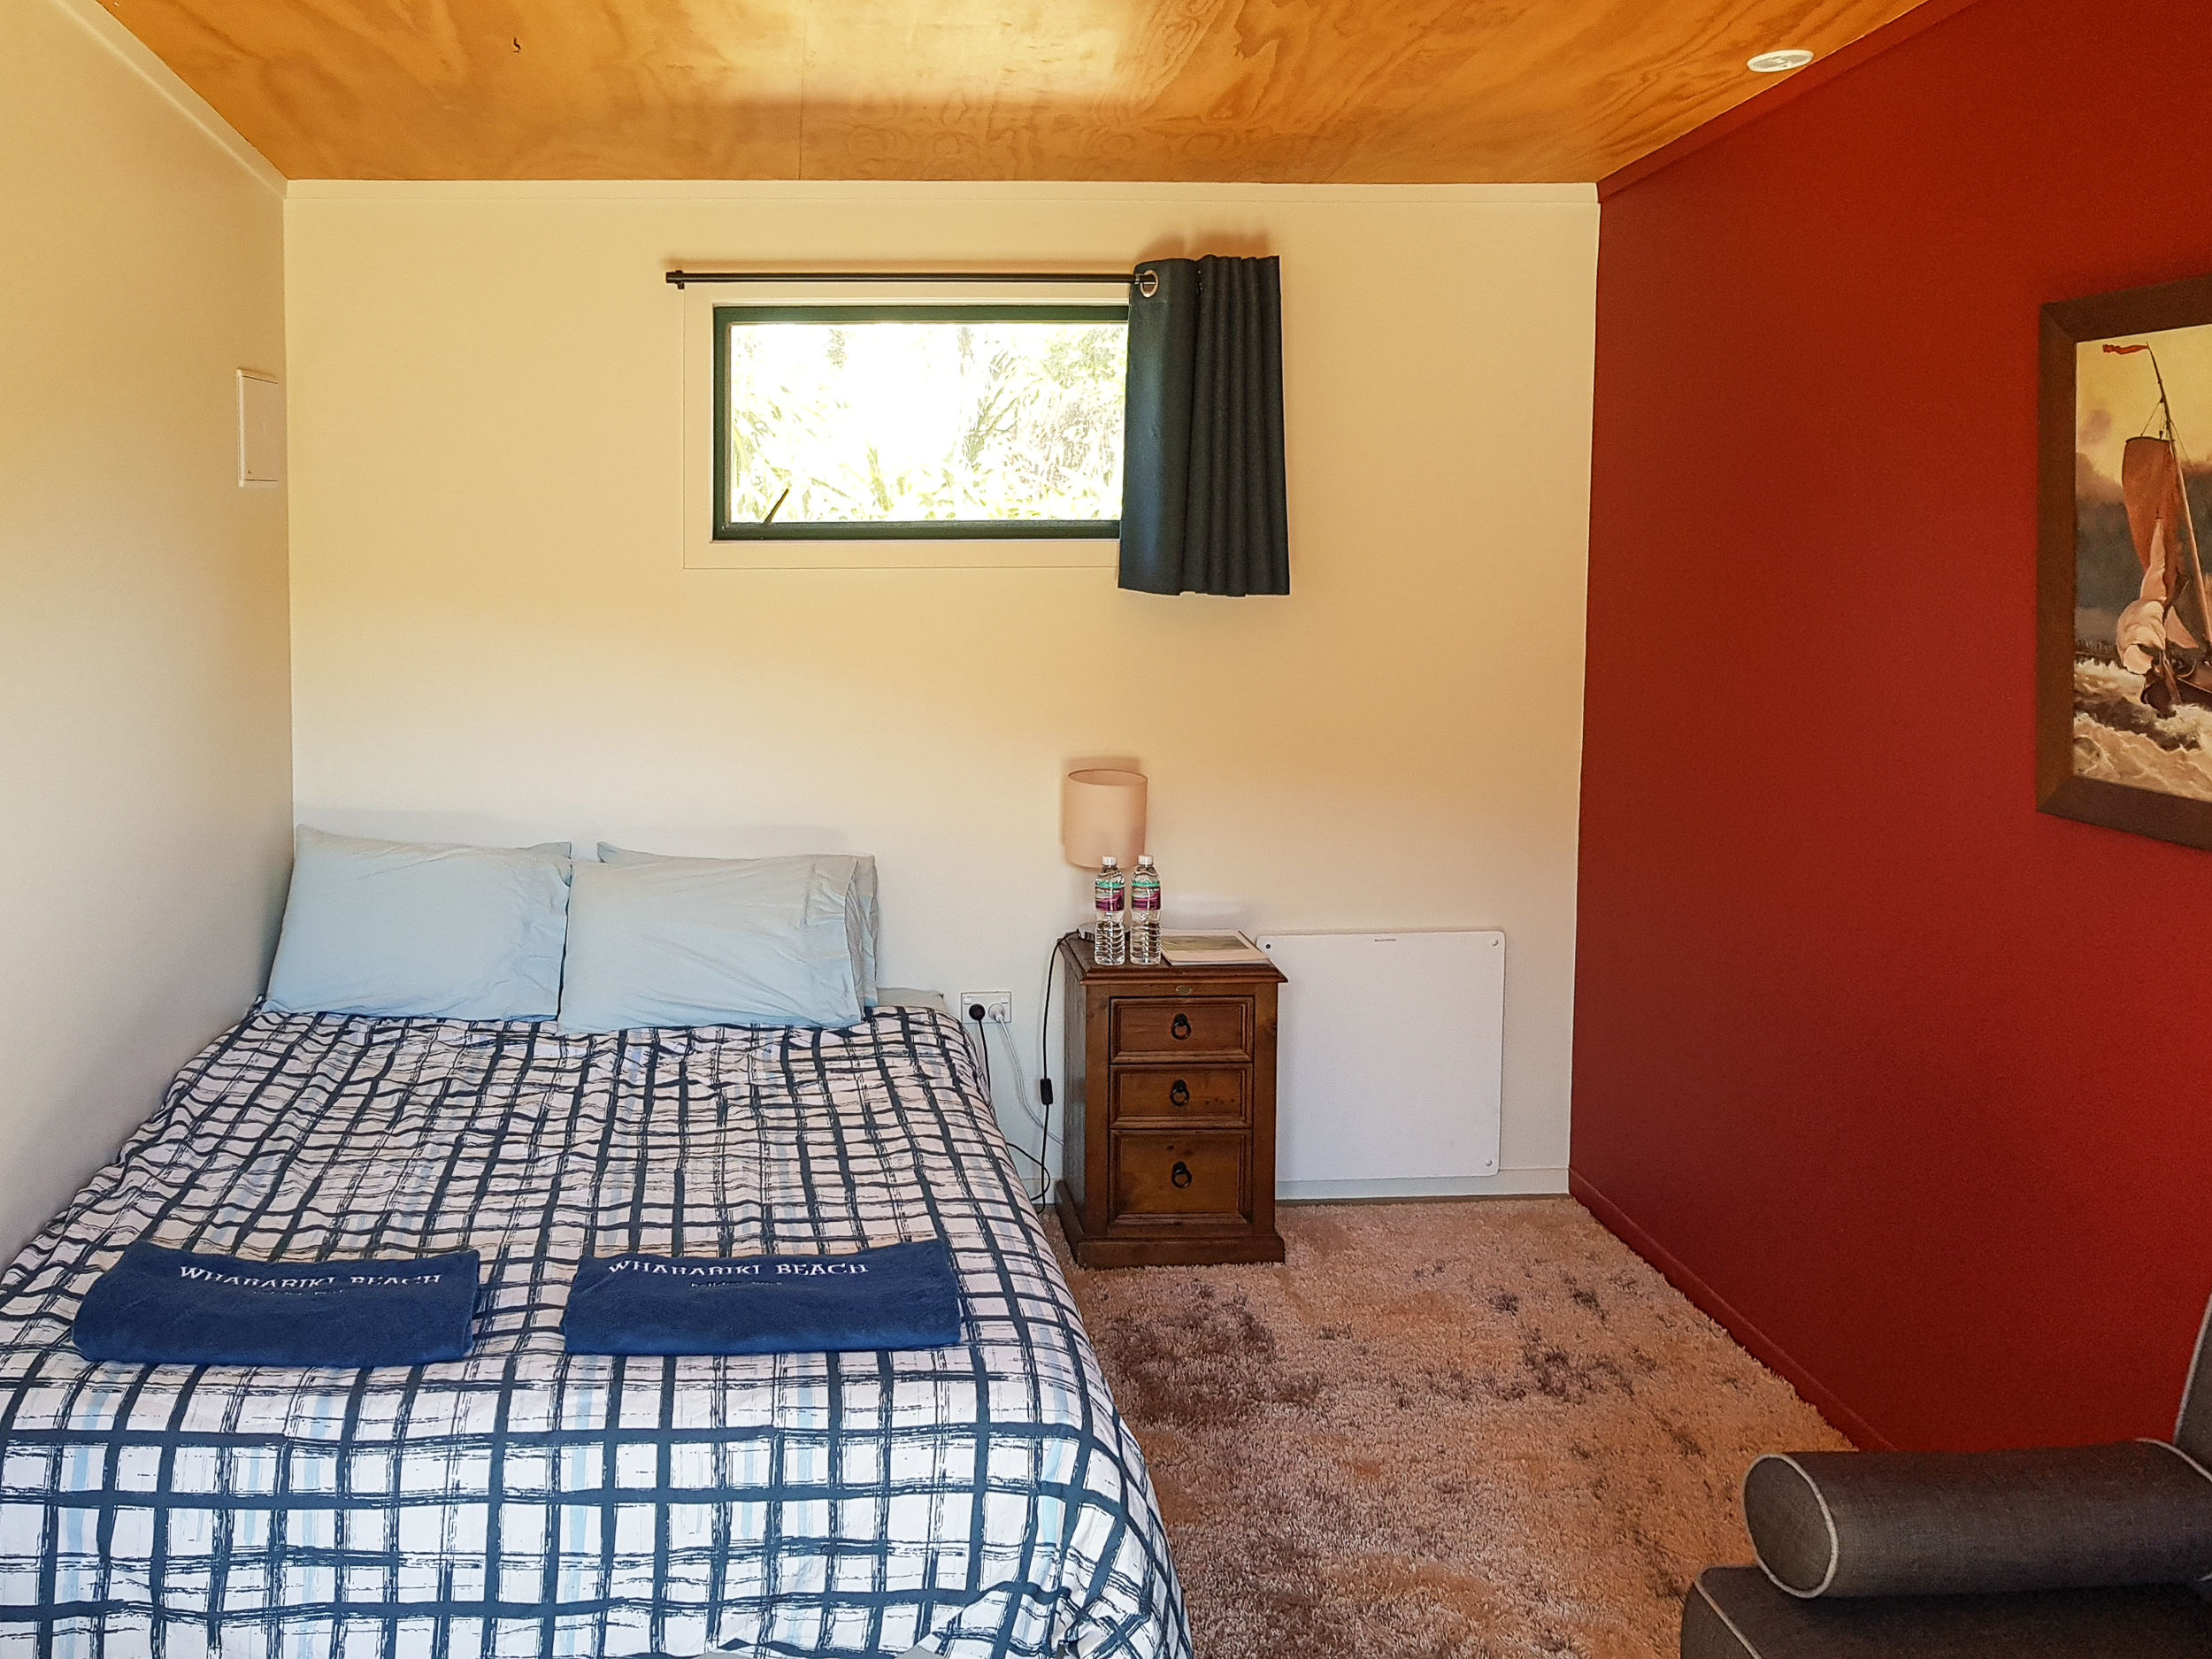 Tourist accommodation in a natural parkland setting in Golden Bay, NZ.